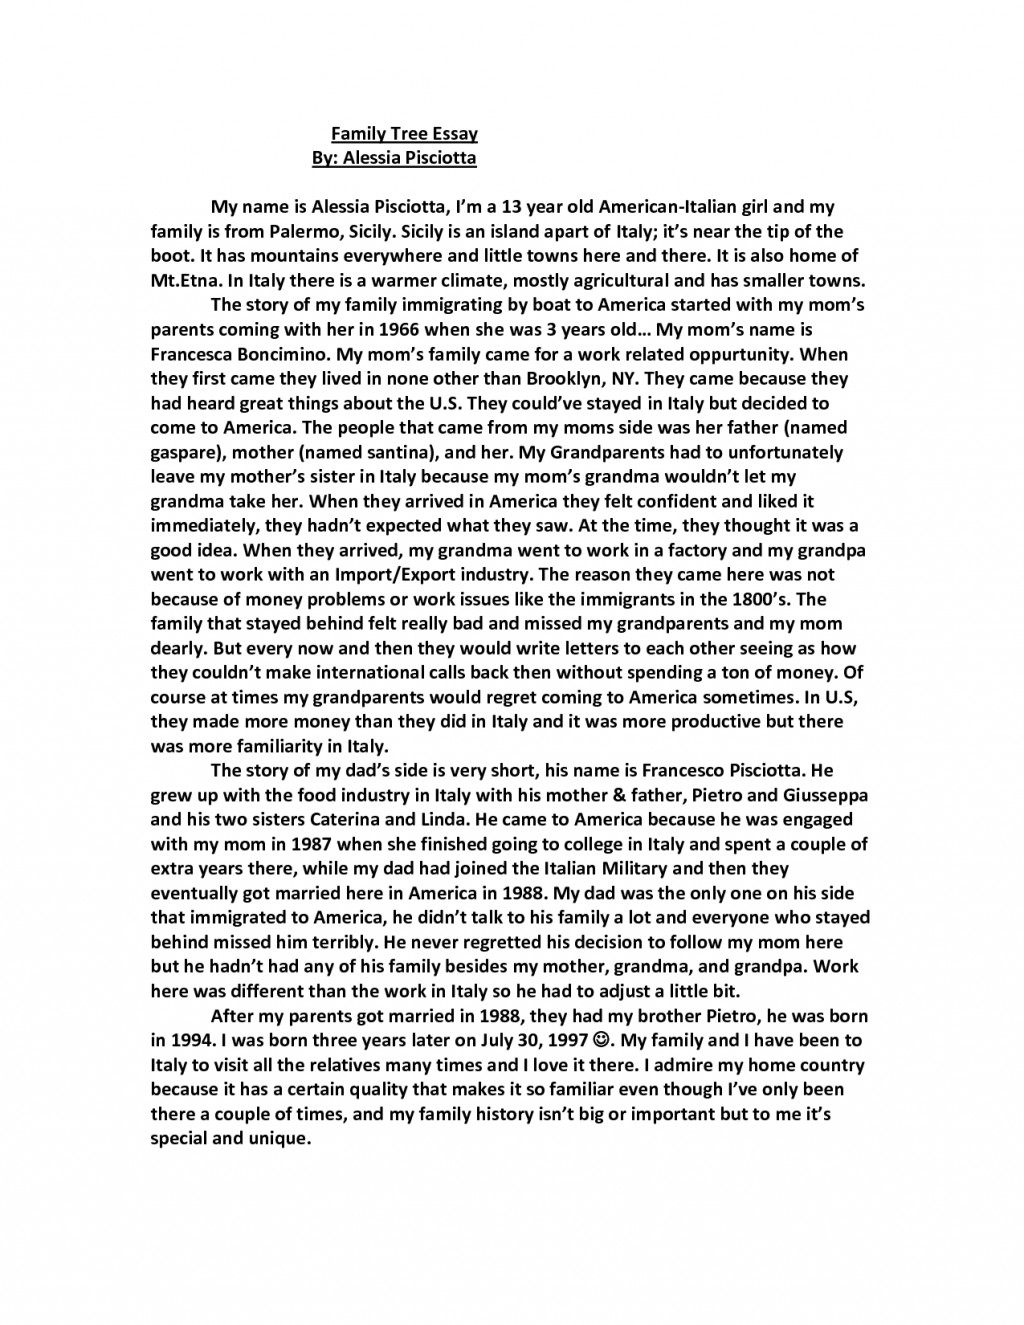 essay on family values first and foremost